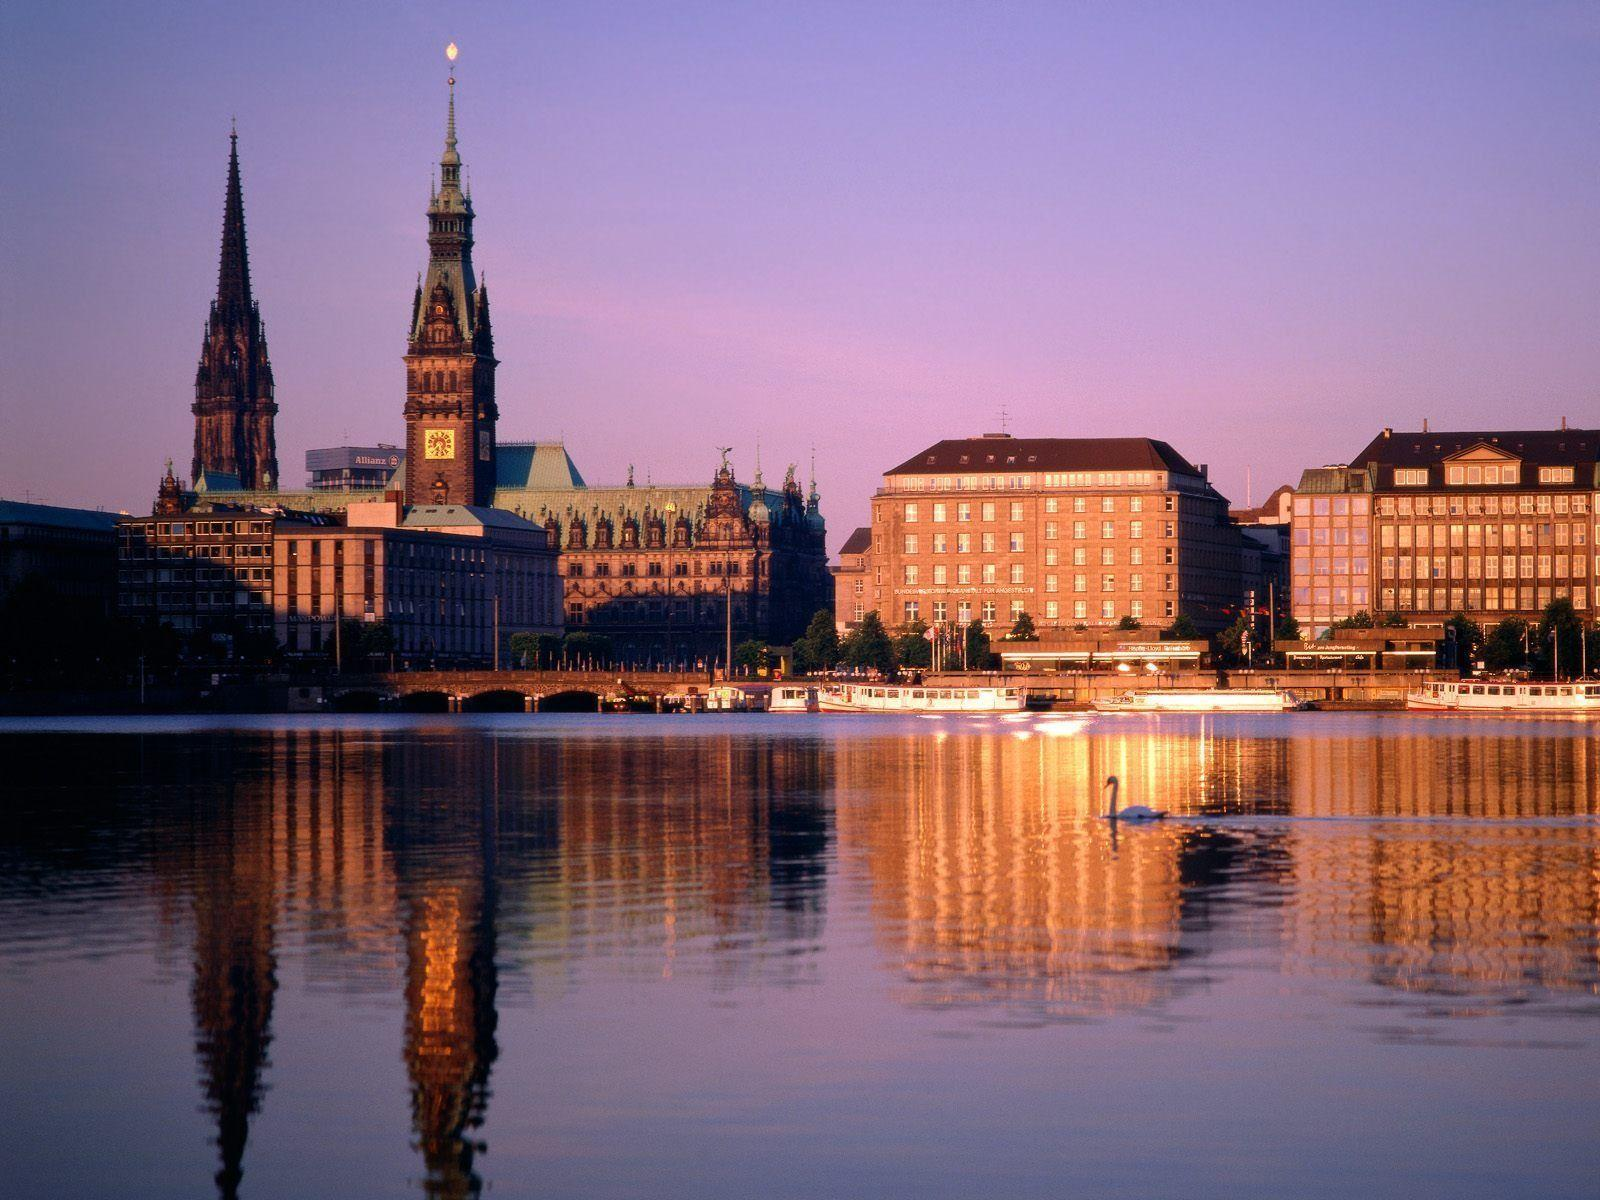 Hamburg Wallpapers, Images, Wallpapers of Hamburg in HQFX Quality ...